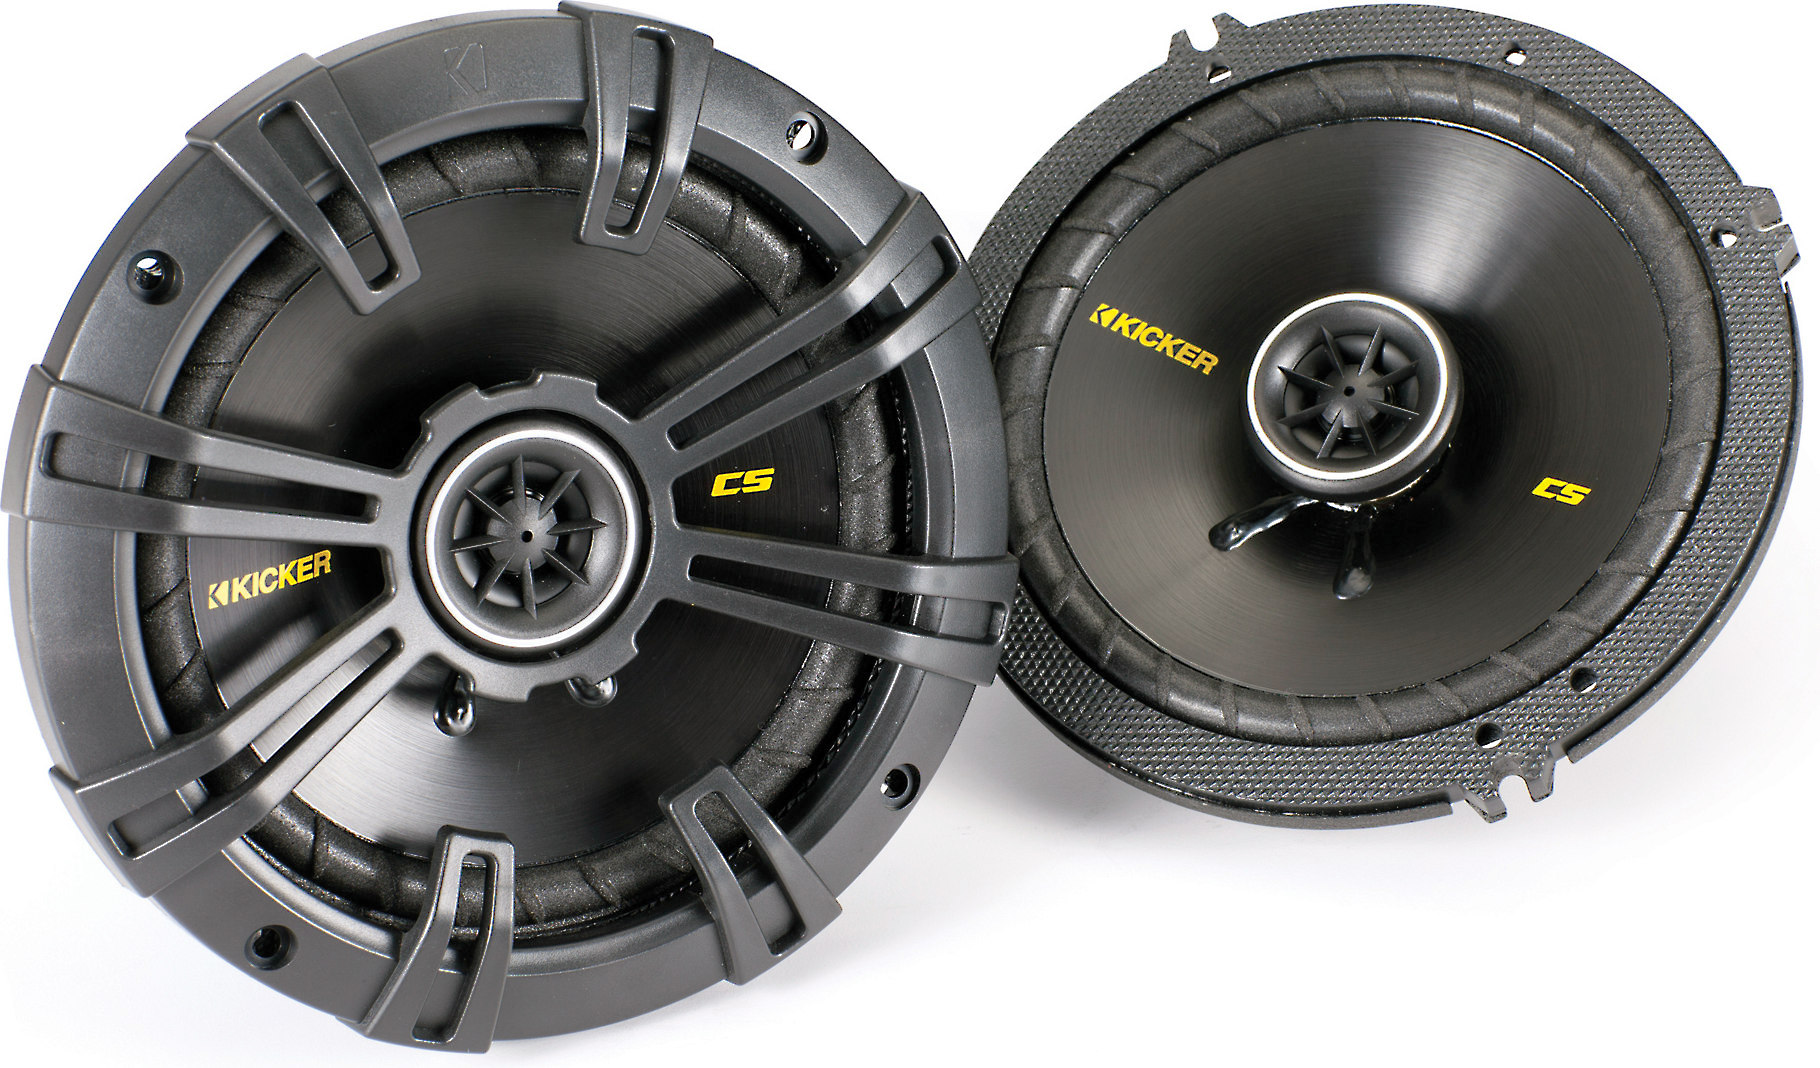 Kicker 41KSC654 6.5 inch Coaxial 2-Way Speakers